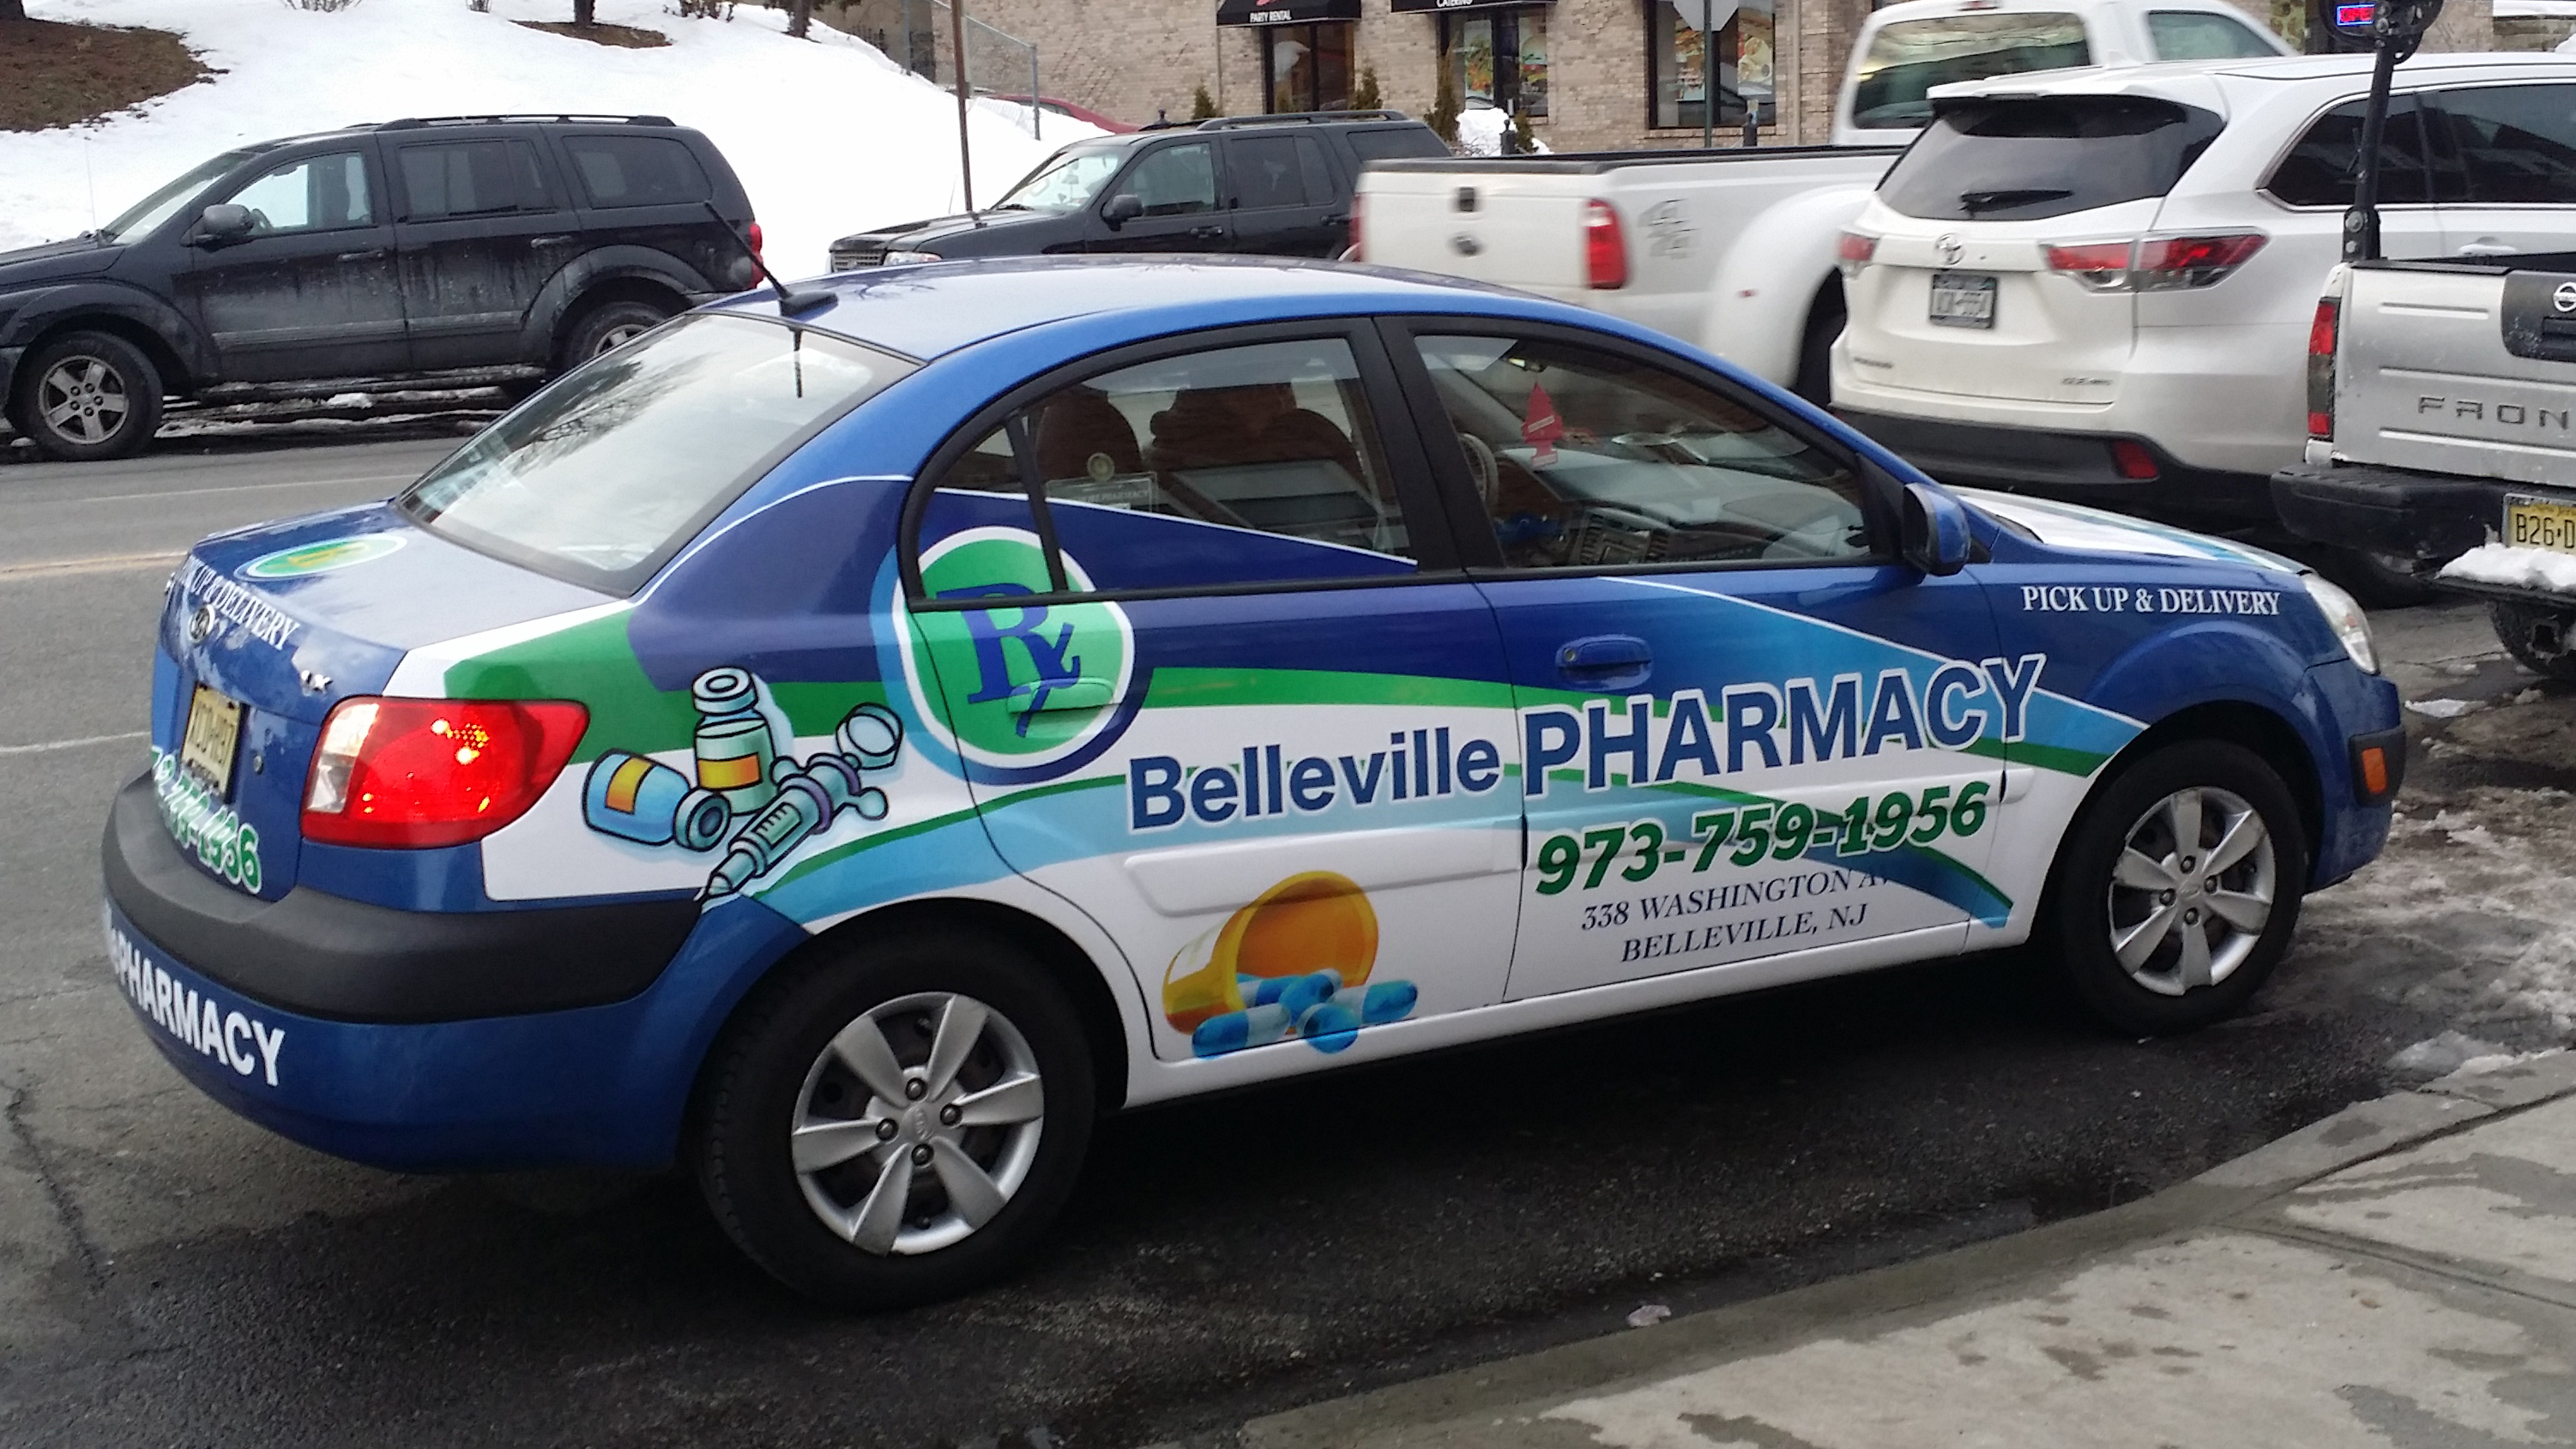 Belleville Pharmacy